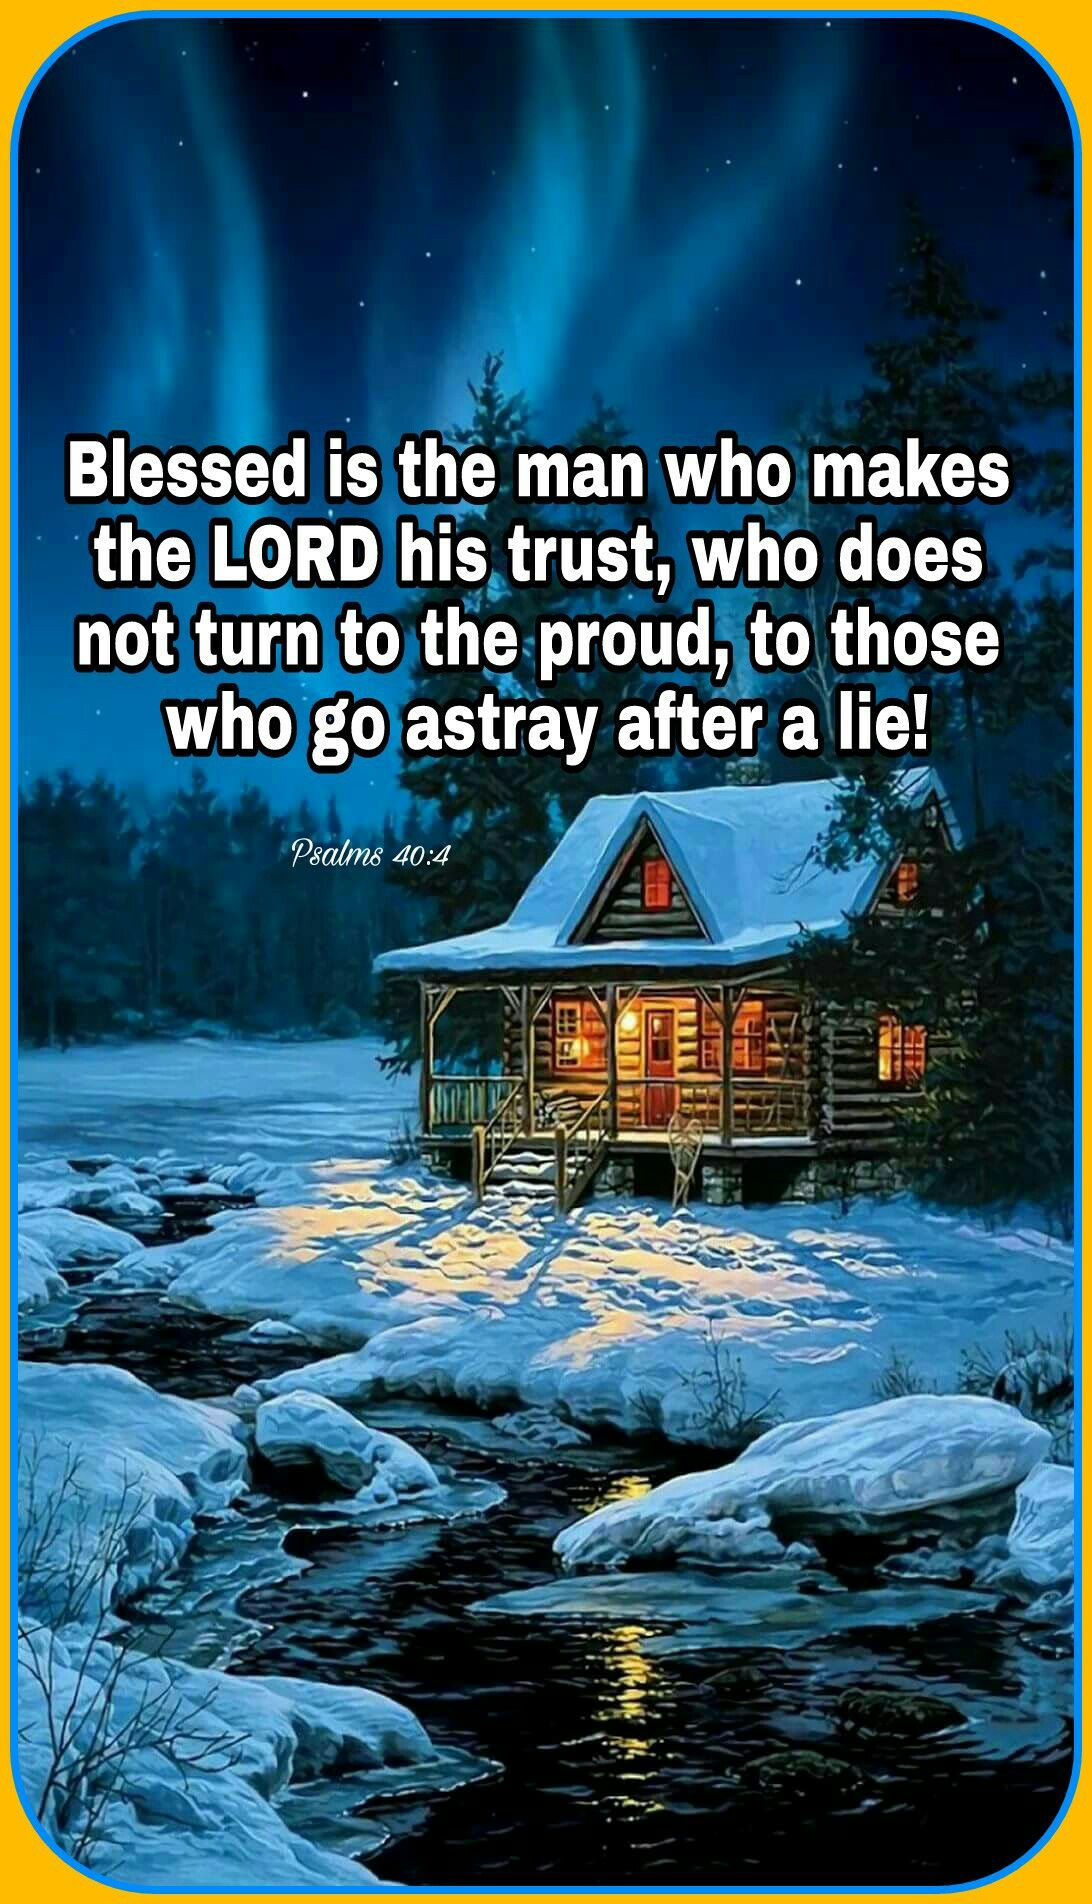 Christian Inspirational Quotes Life Pinmalar Tr On Bible Verses With Images  Pinterest  Psalm 40